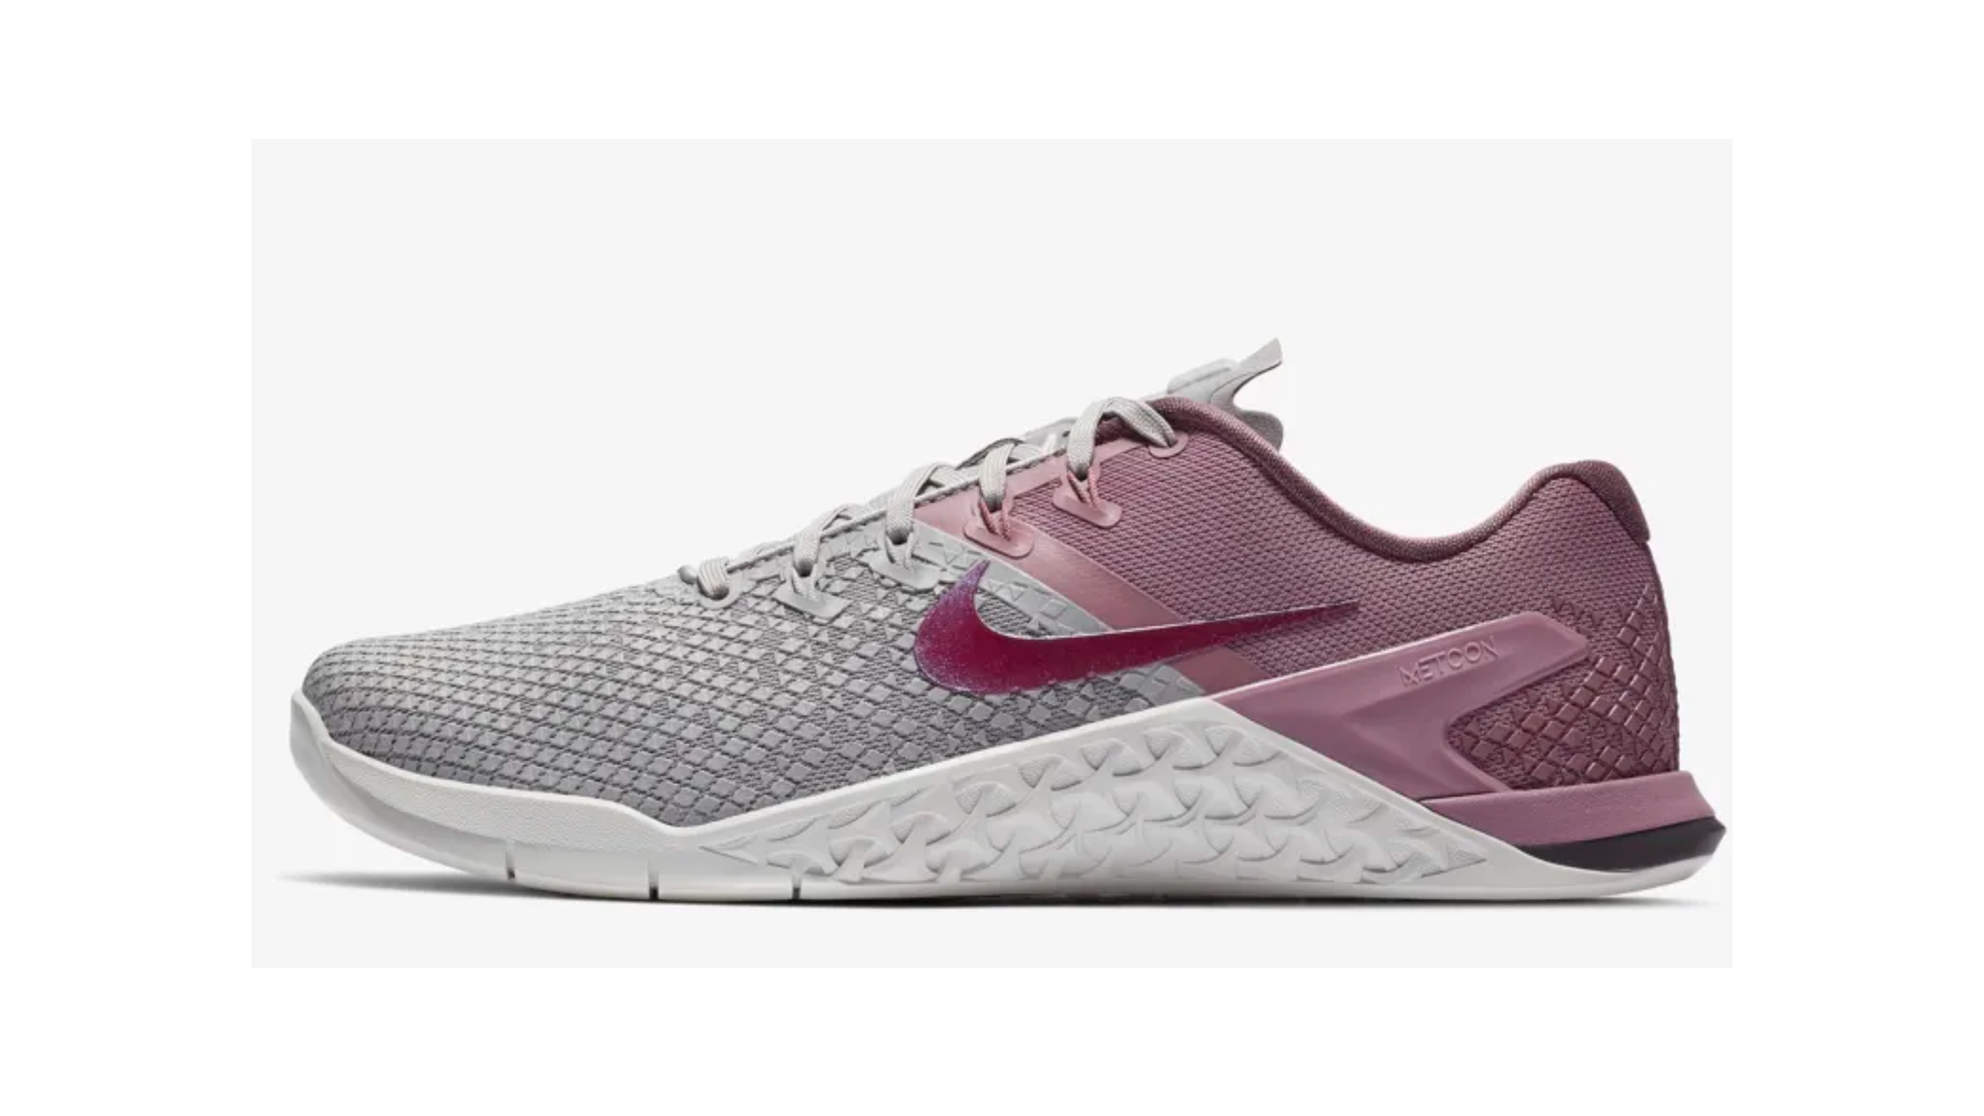 Best CrossFit Shoes for Women - Health e52bb2173c